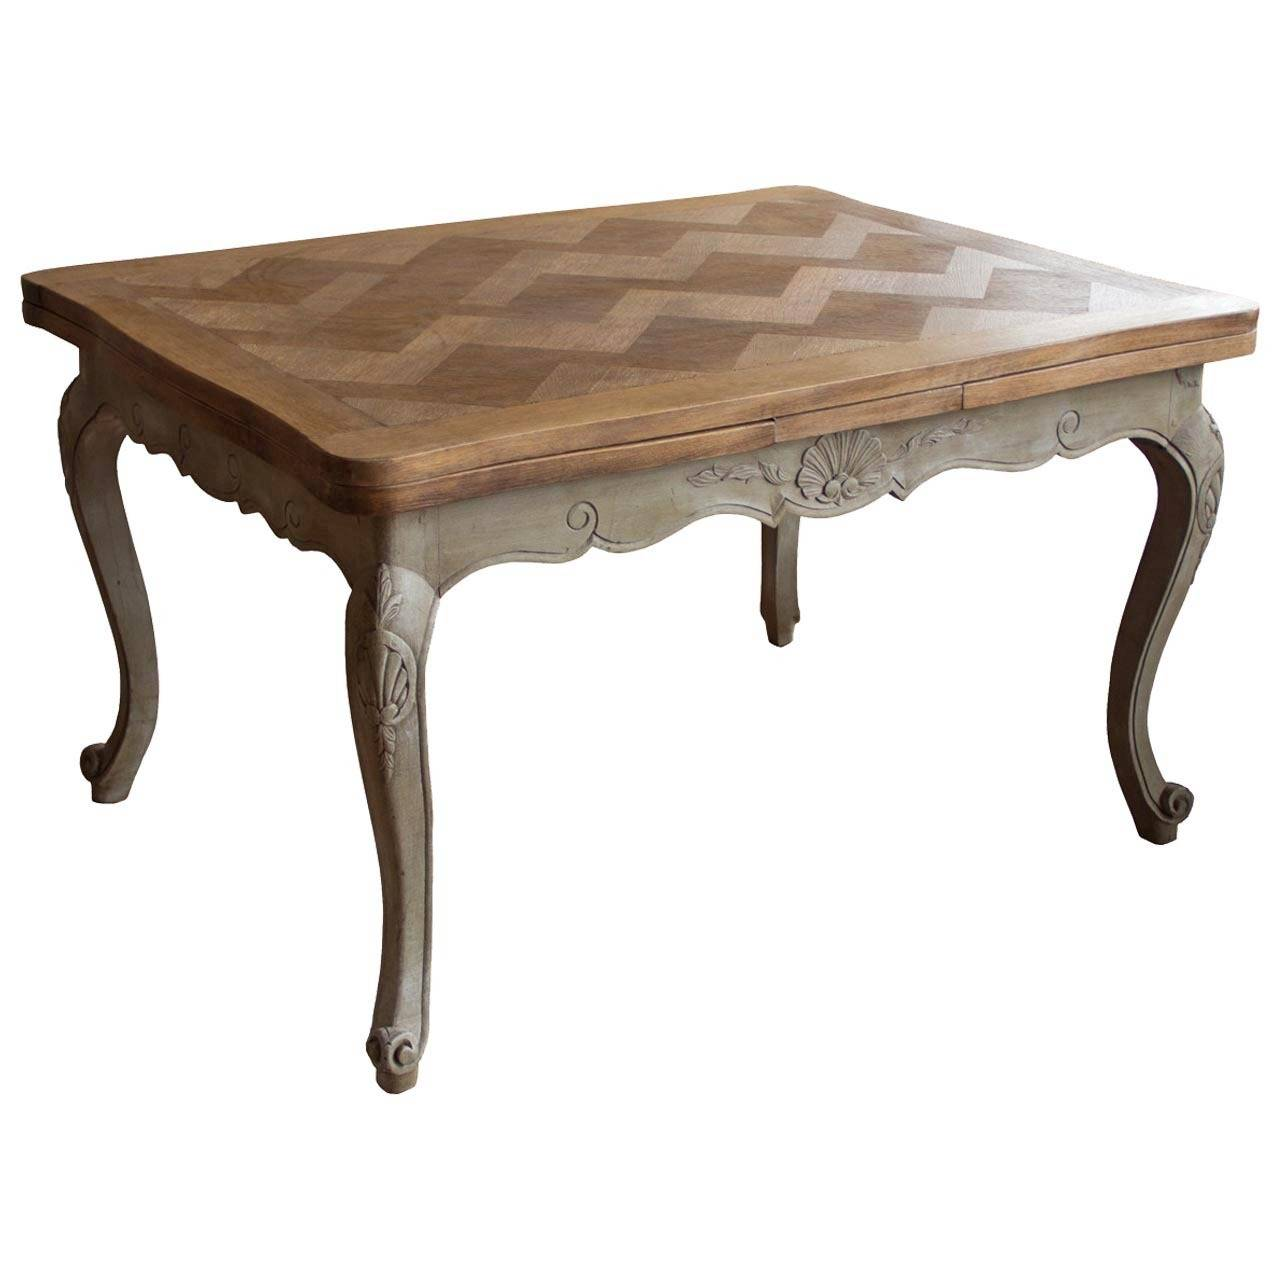 Antique french louis xv revival oak dining table at 1stdibs - Table louis xv ...